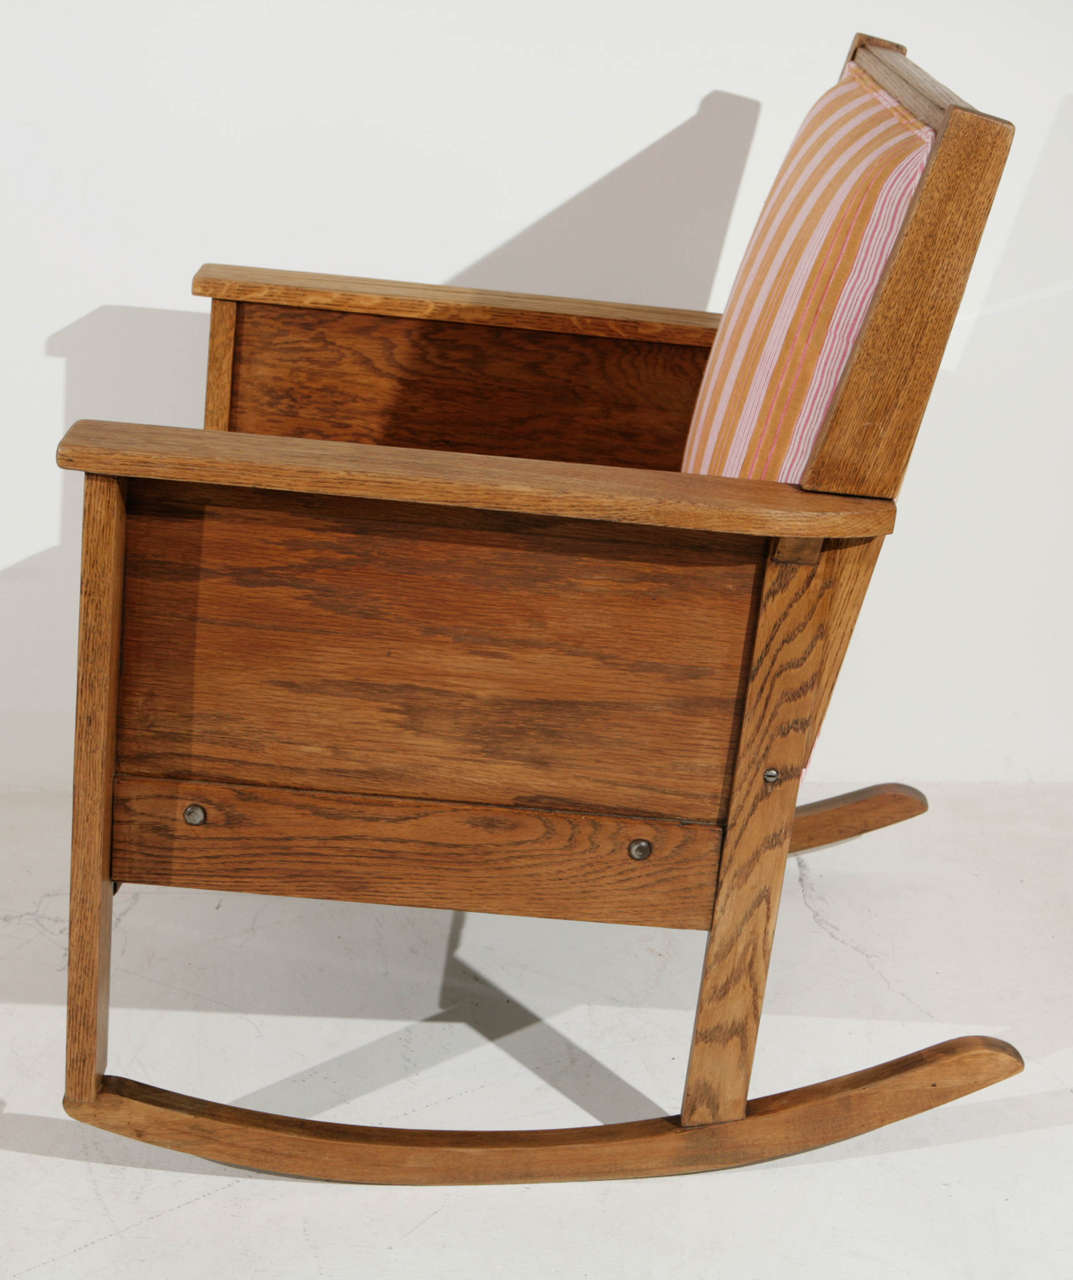 craftsman rocking chair styles orange computer late 19th century american mission style oak